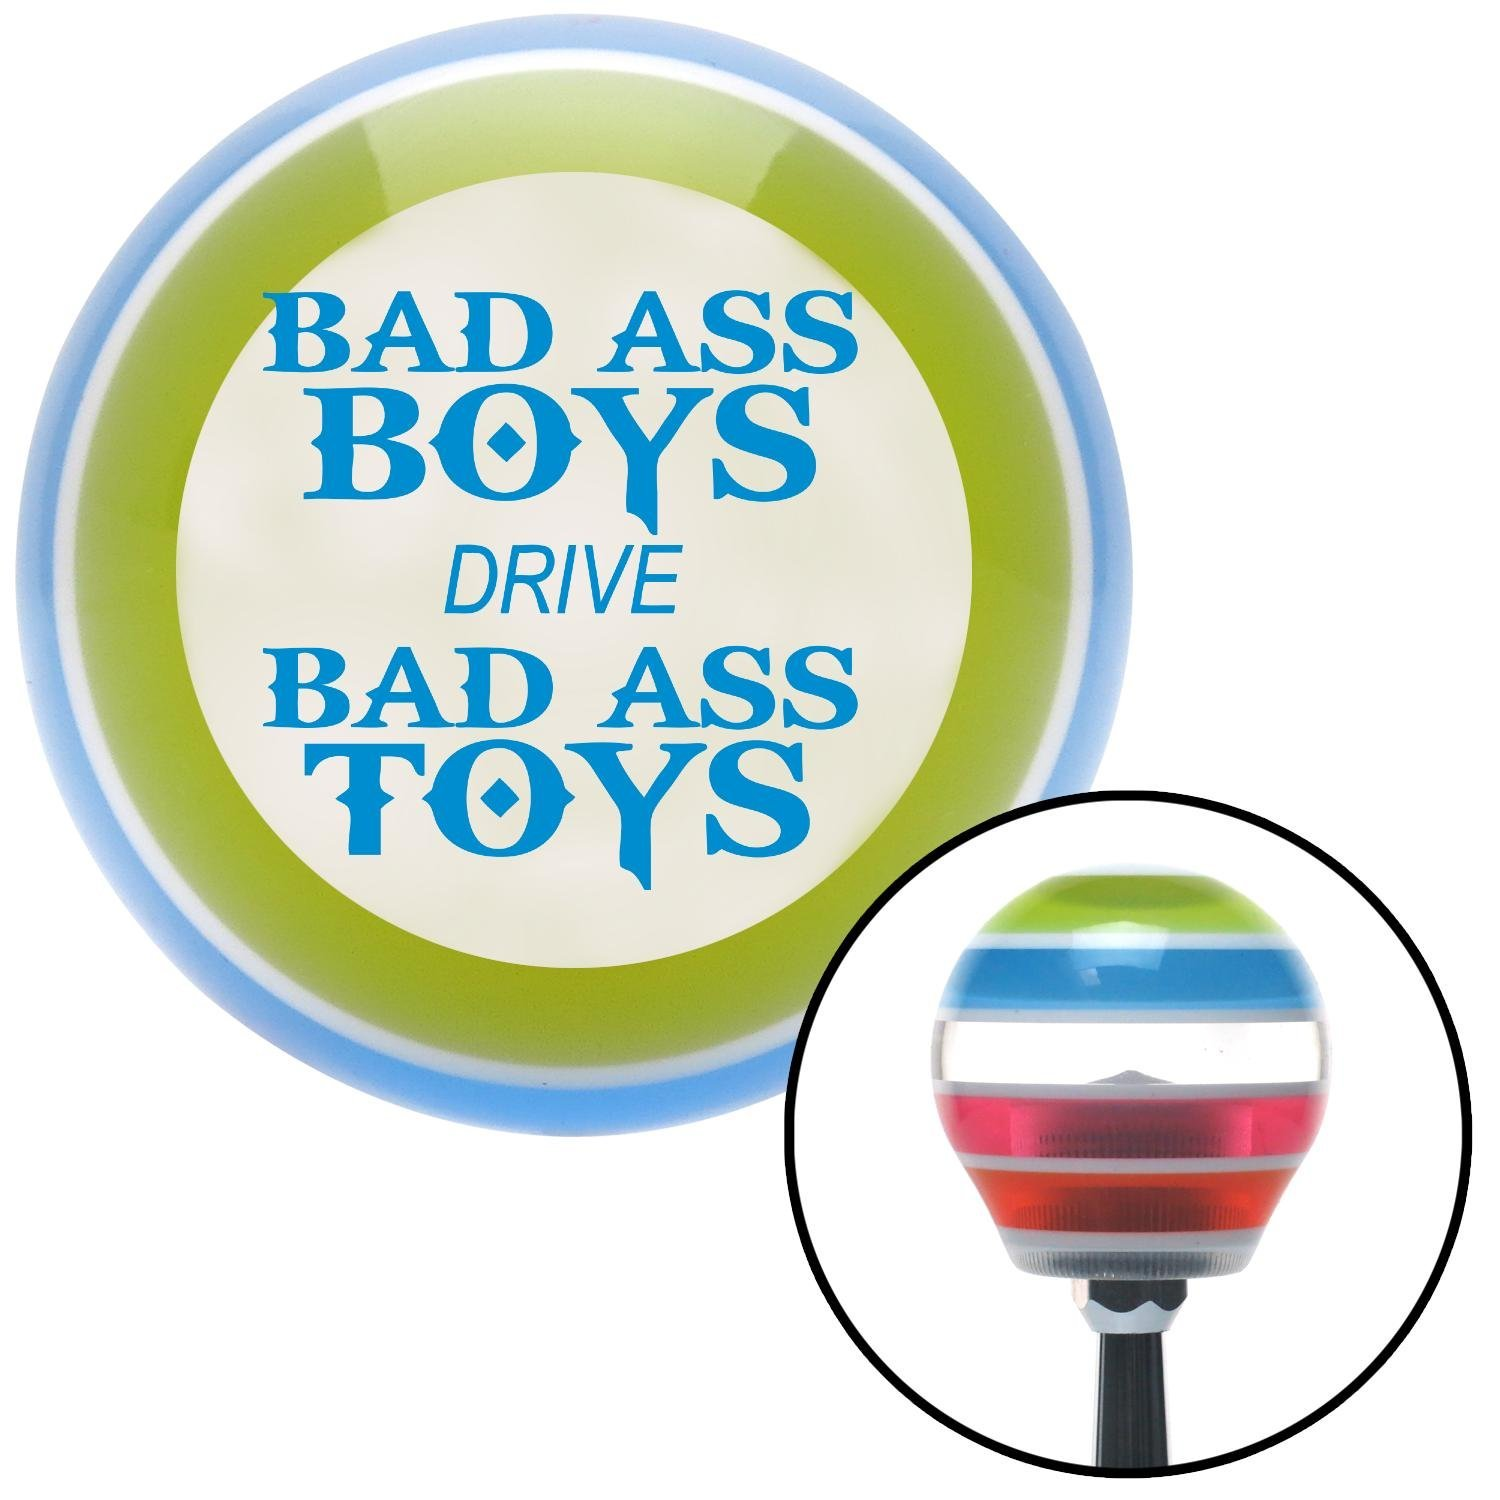 Blue Bad Ass Boys Drive Bad Ass Toys American Shifter 137720 Stripe Shift Knob with M16 x 1.5 Insert